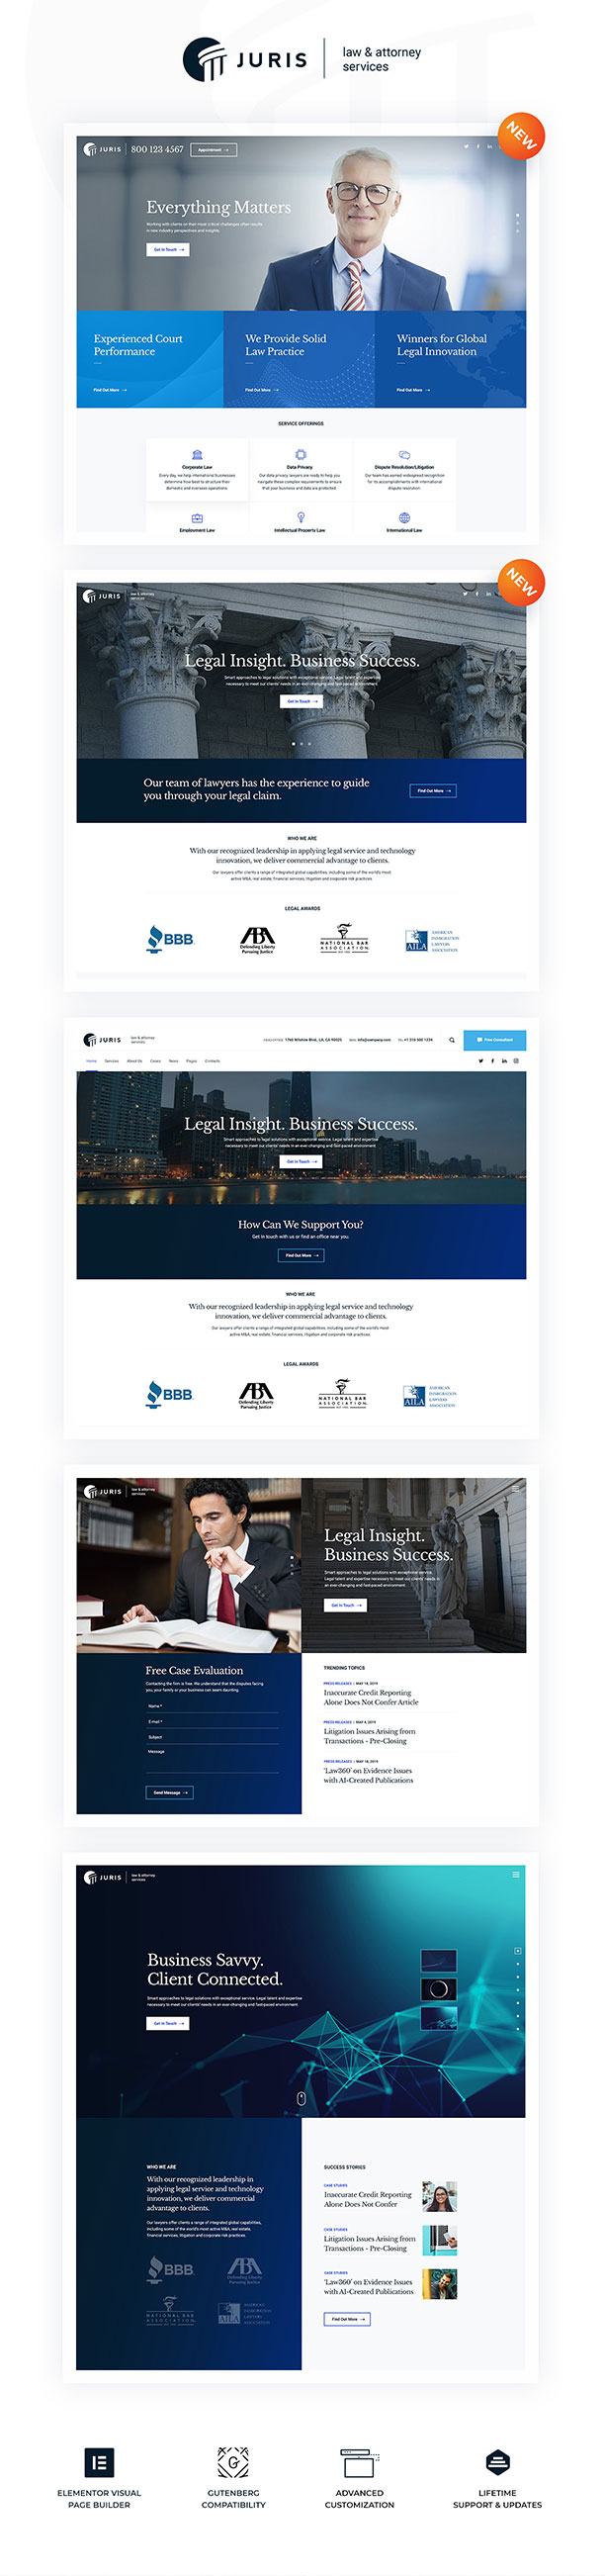 Juris - Law Consulting Services WordPress Theme - 1